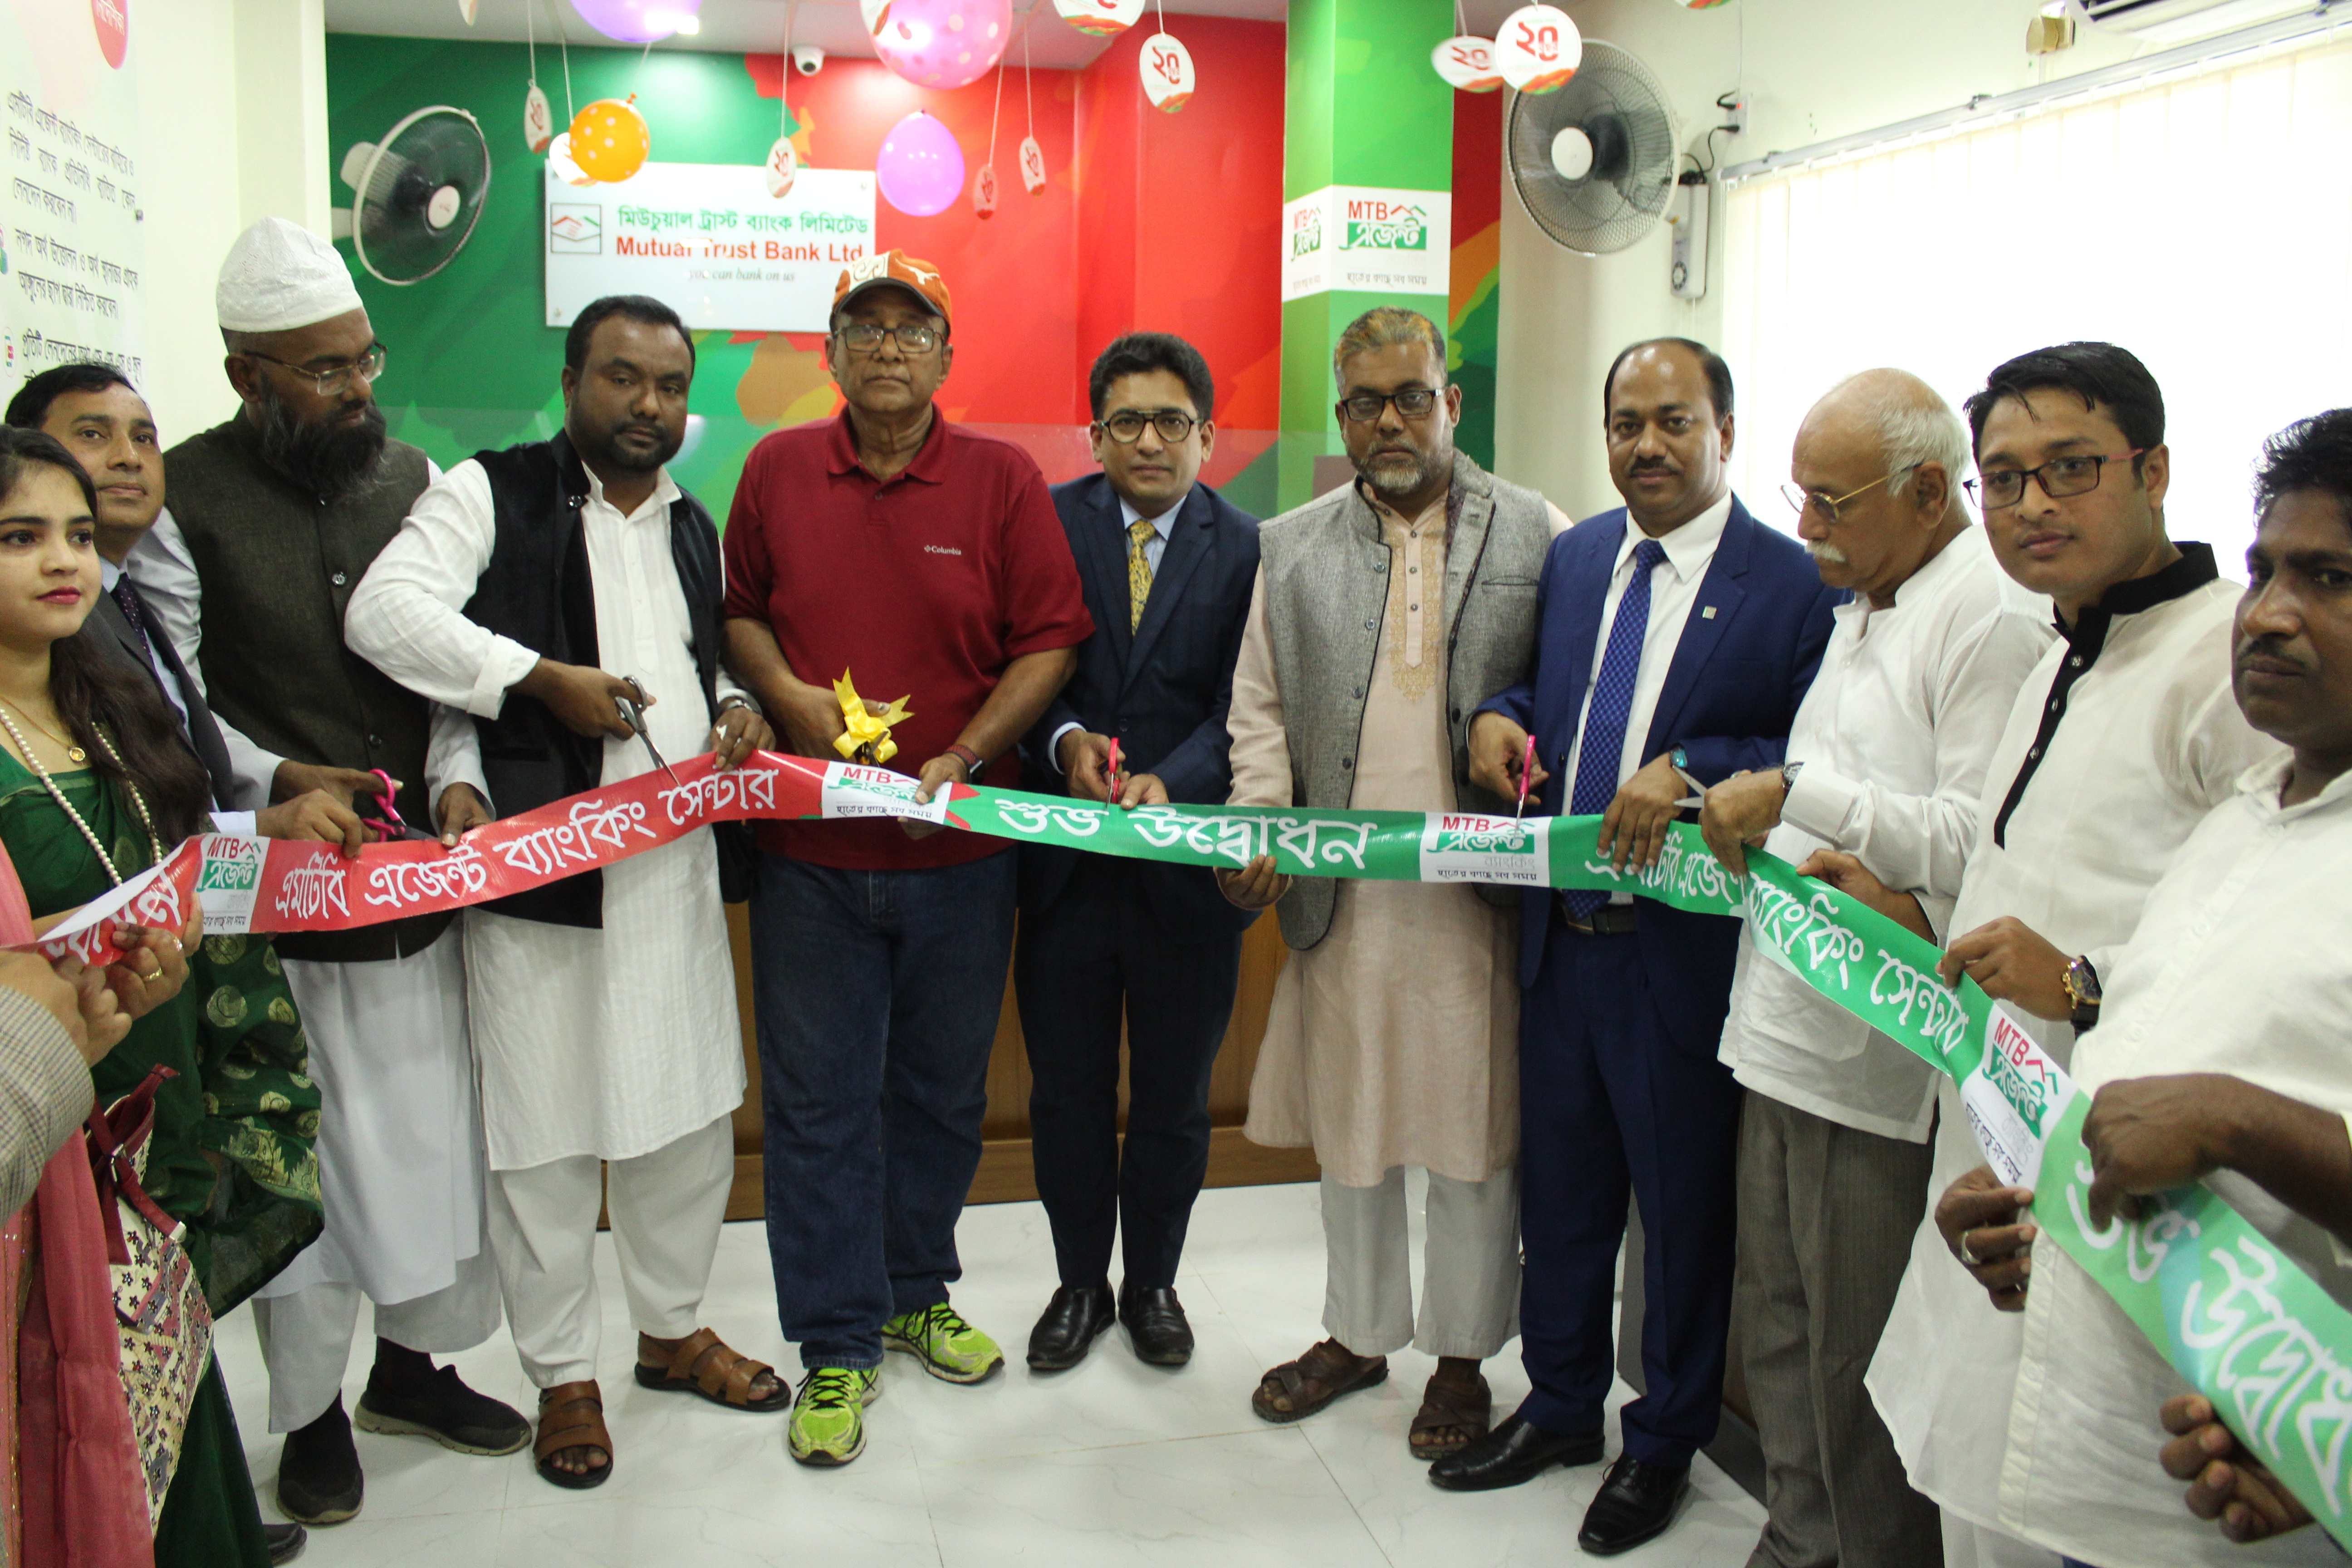 MTB Opens Its 128th Agent Banking Centre At Chatar Bazar , Bof, Gazipur